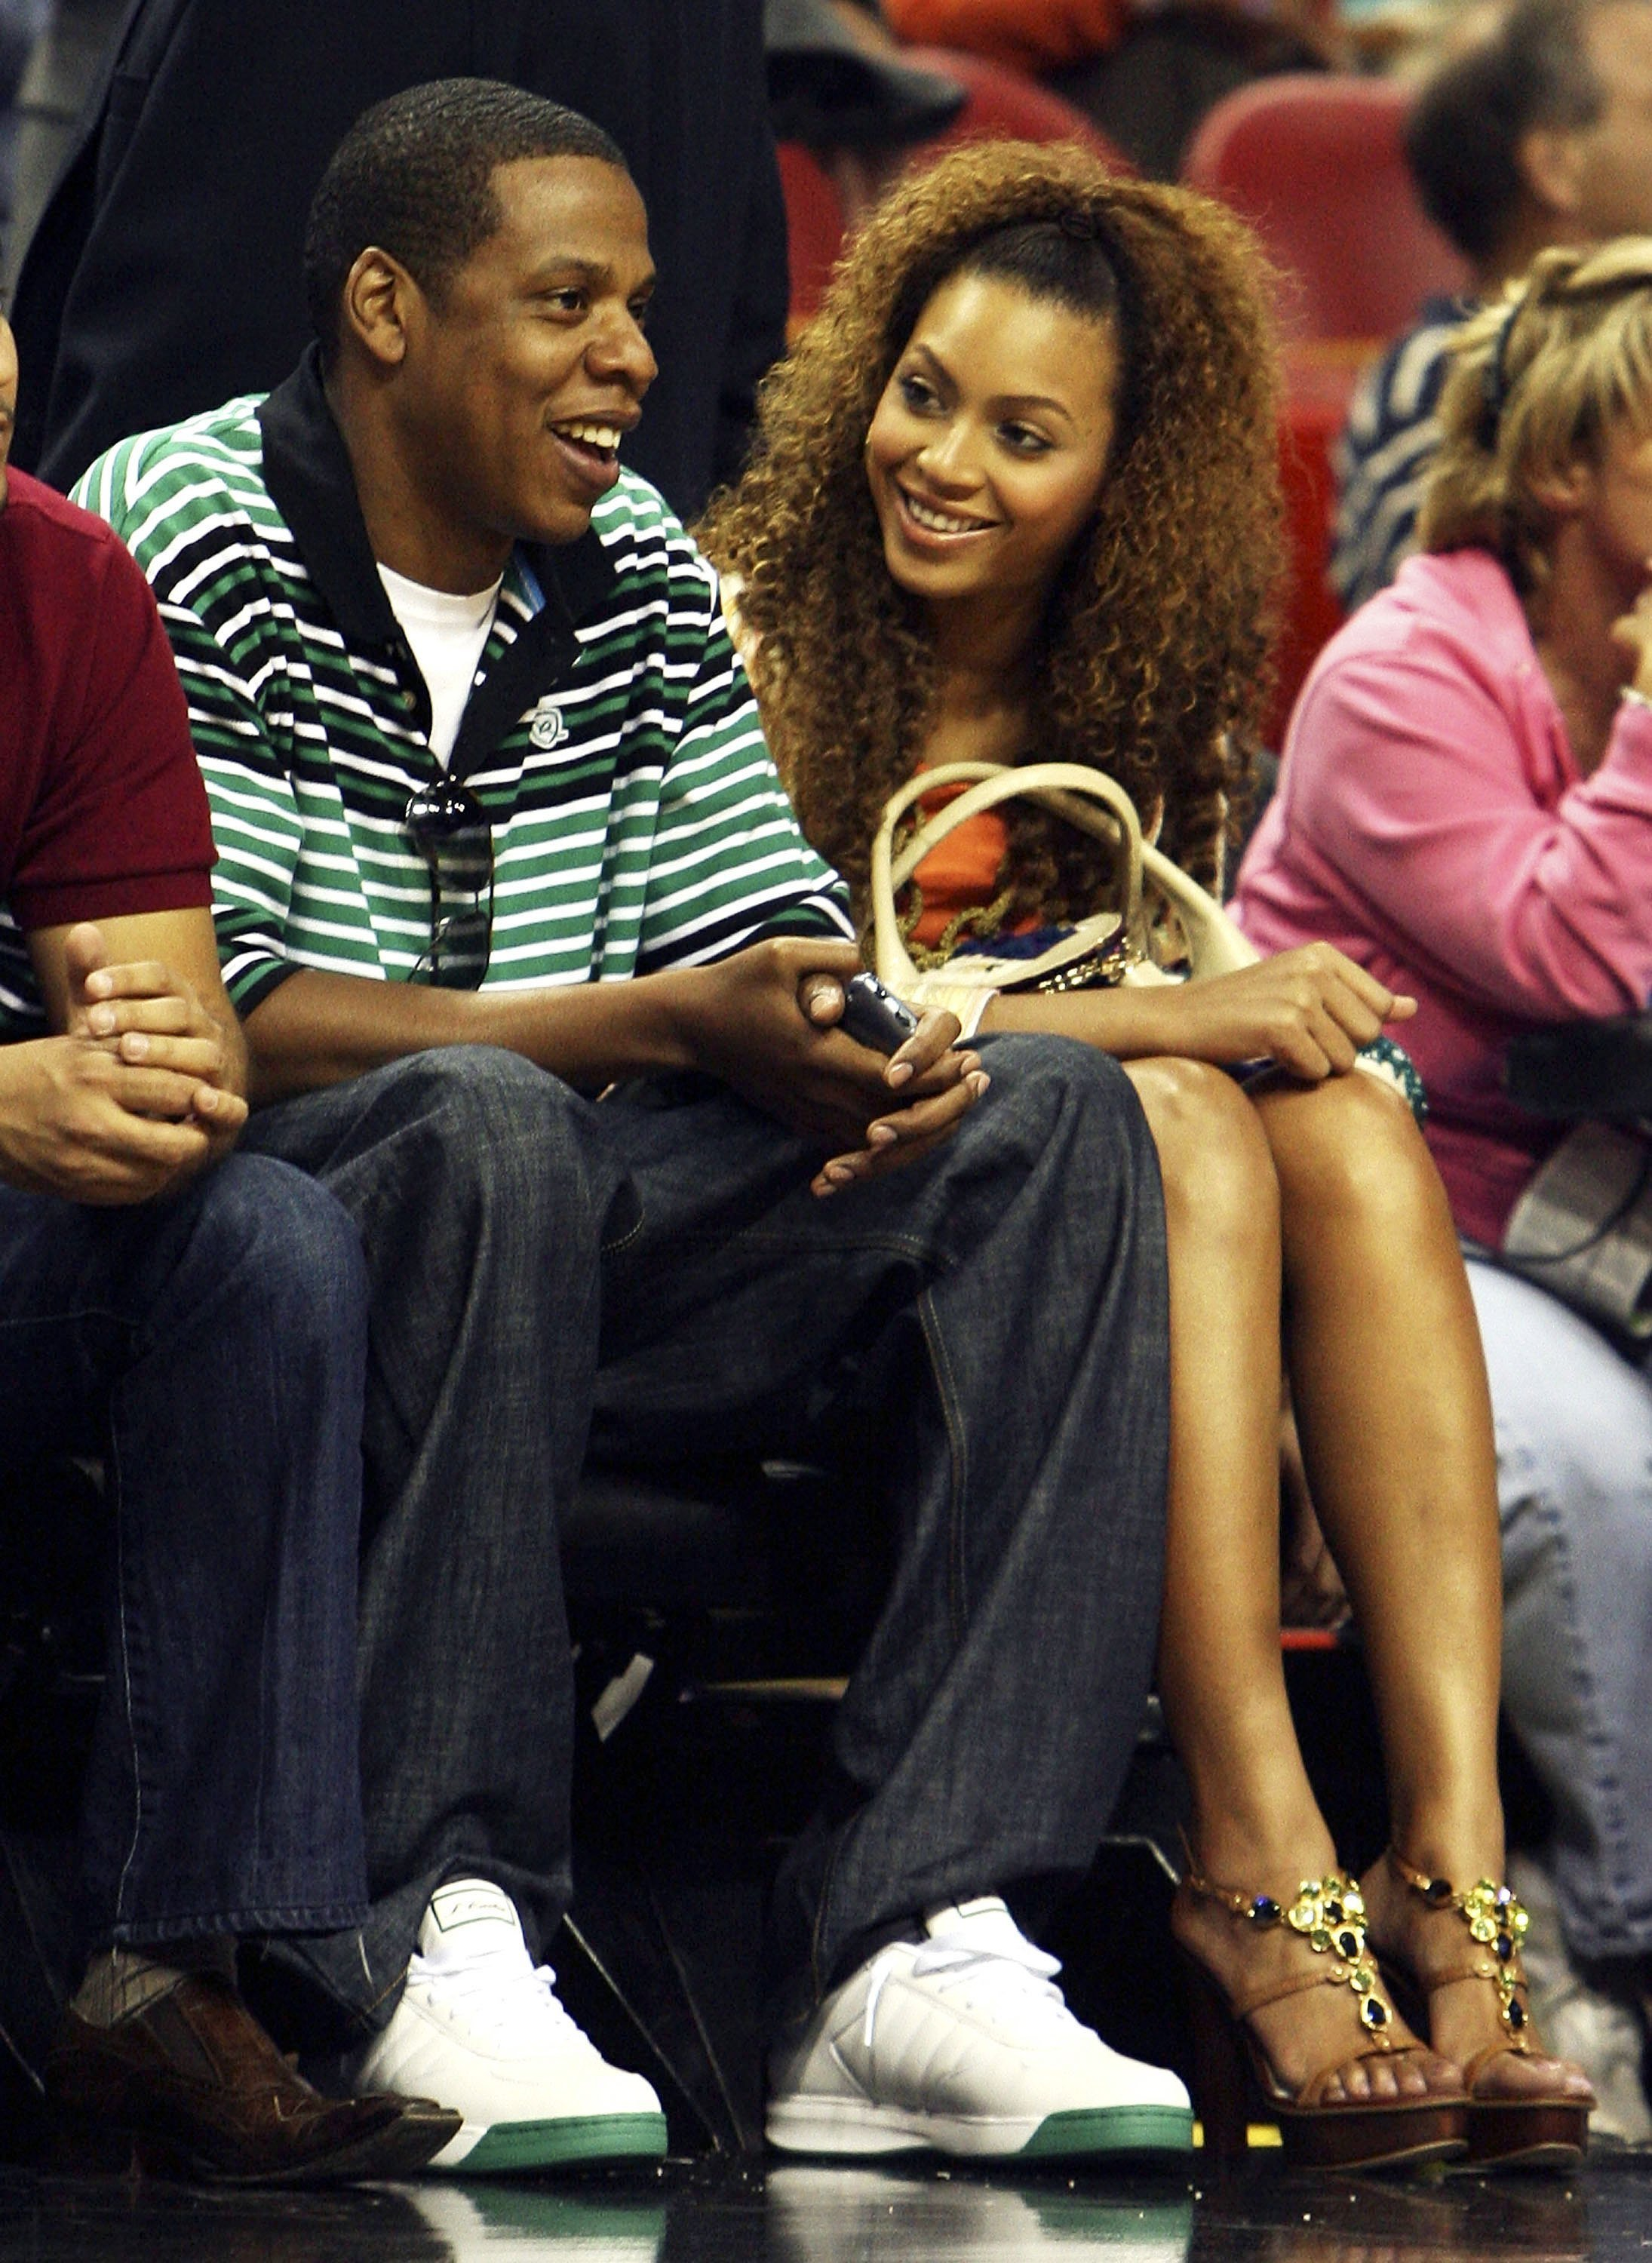 Jay-Z and Beyonce attend a game between the Toronto Raptors and the Miami Heat on April 11, 2006. | Photo: GettyImages